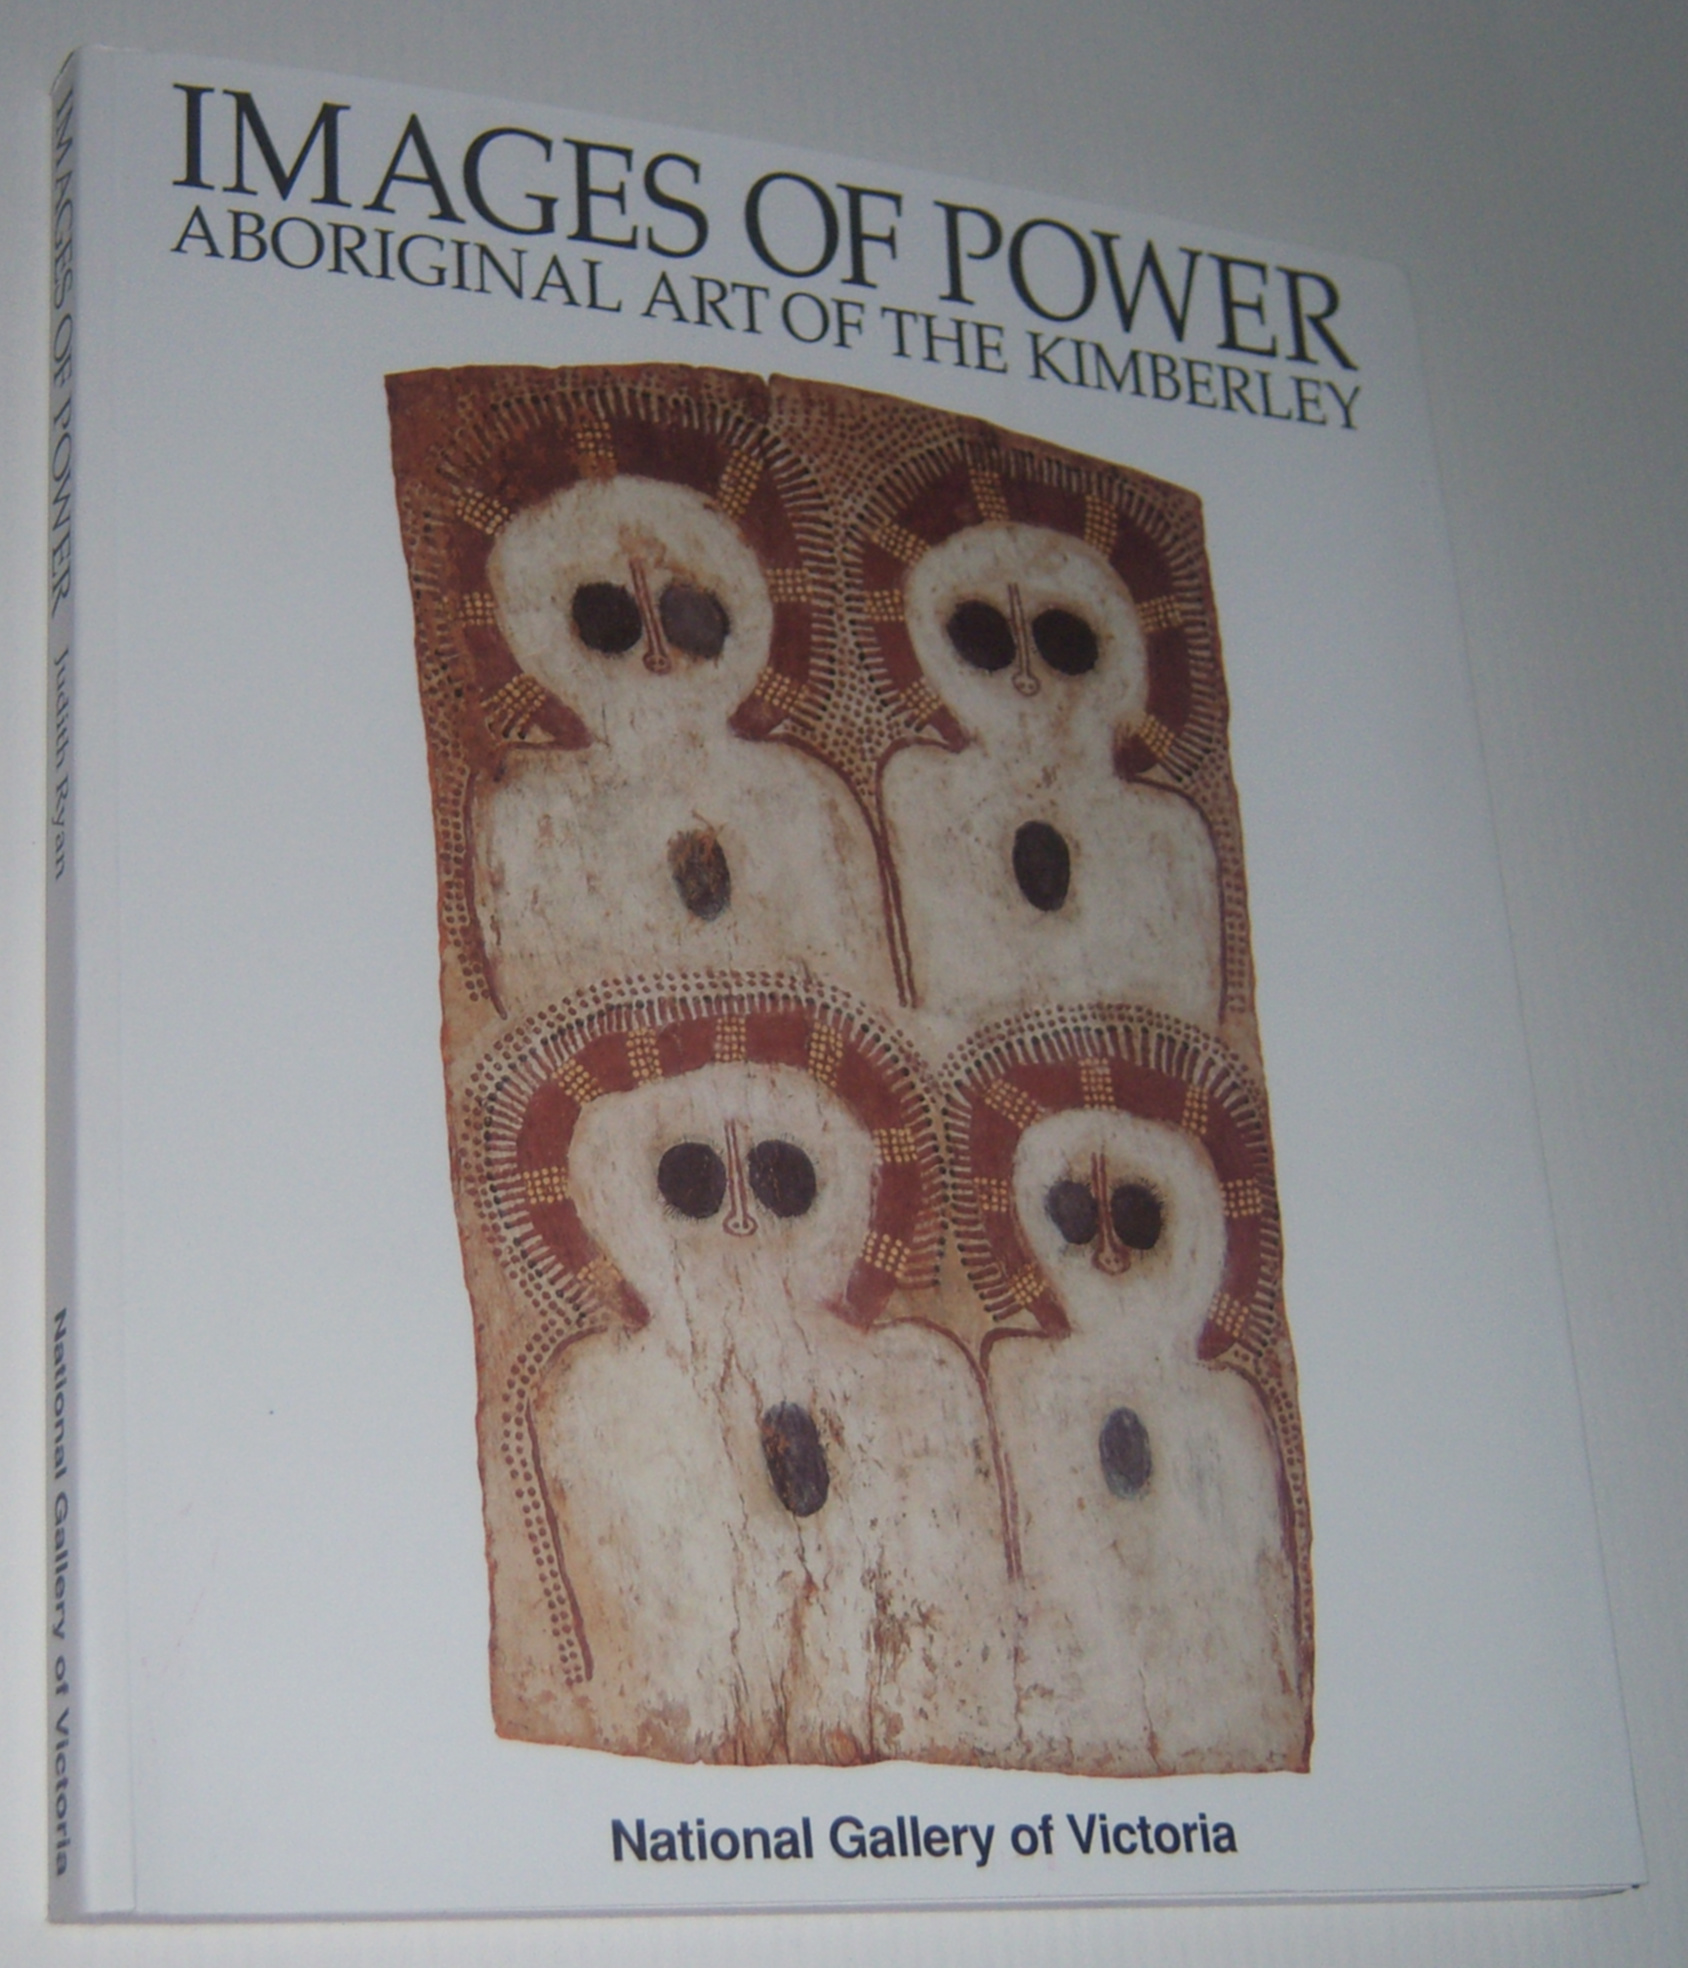 Image for IMAGES OF POWER: Aboriginal Art of the Kimberley